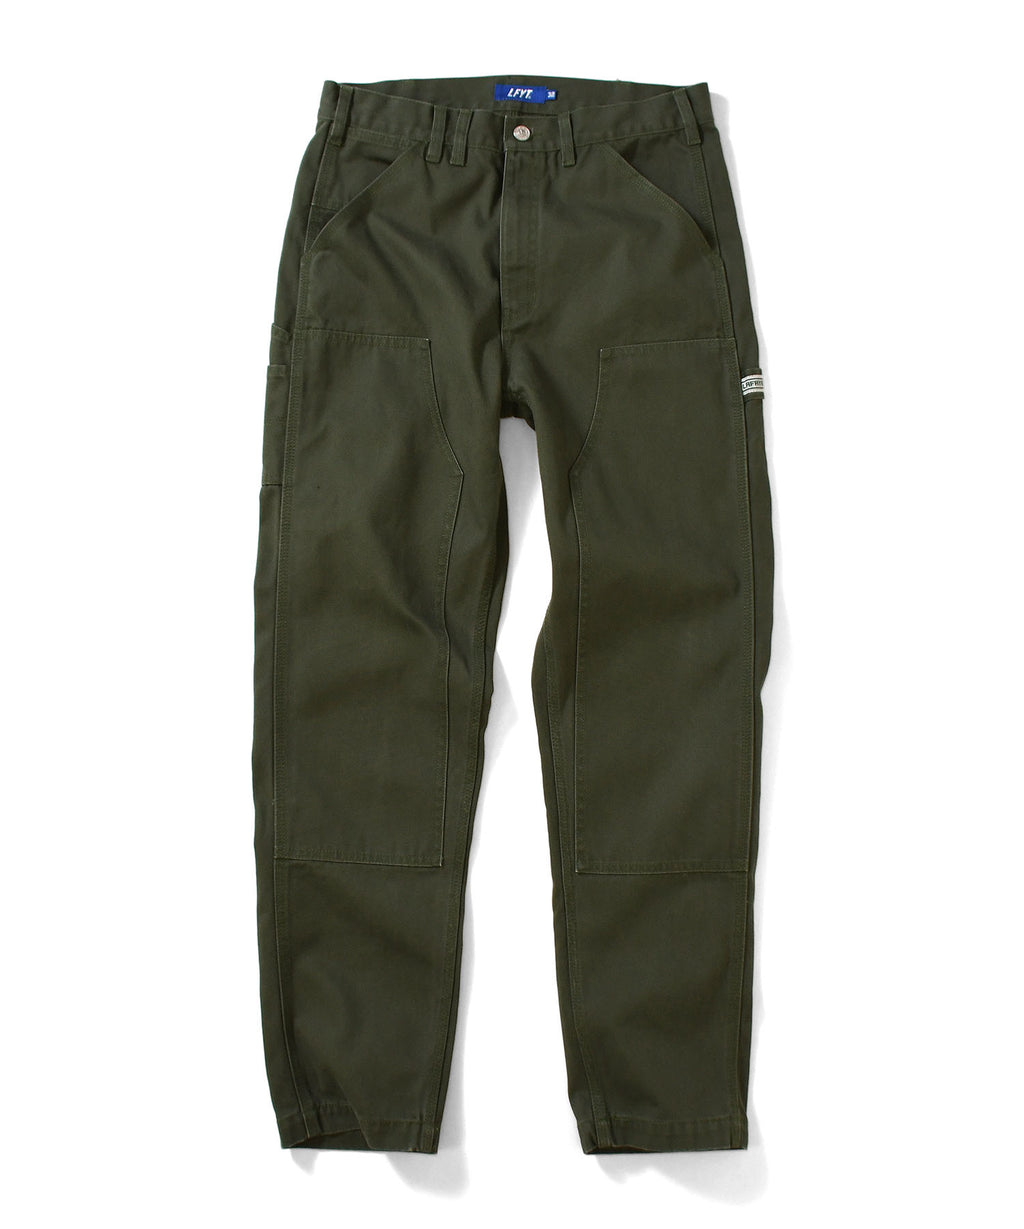 WORKERS DOUBLE KNEE DUCK PAINTER PANTS LA201203  GREEN